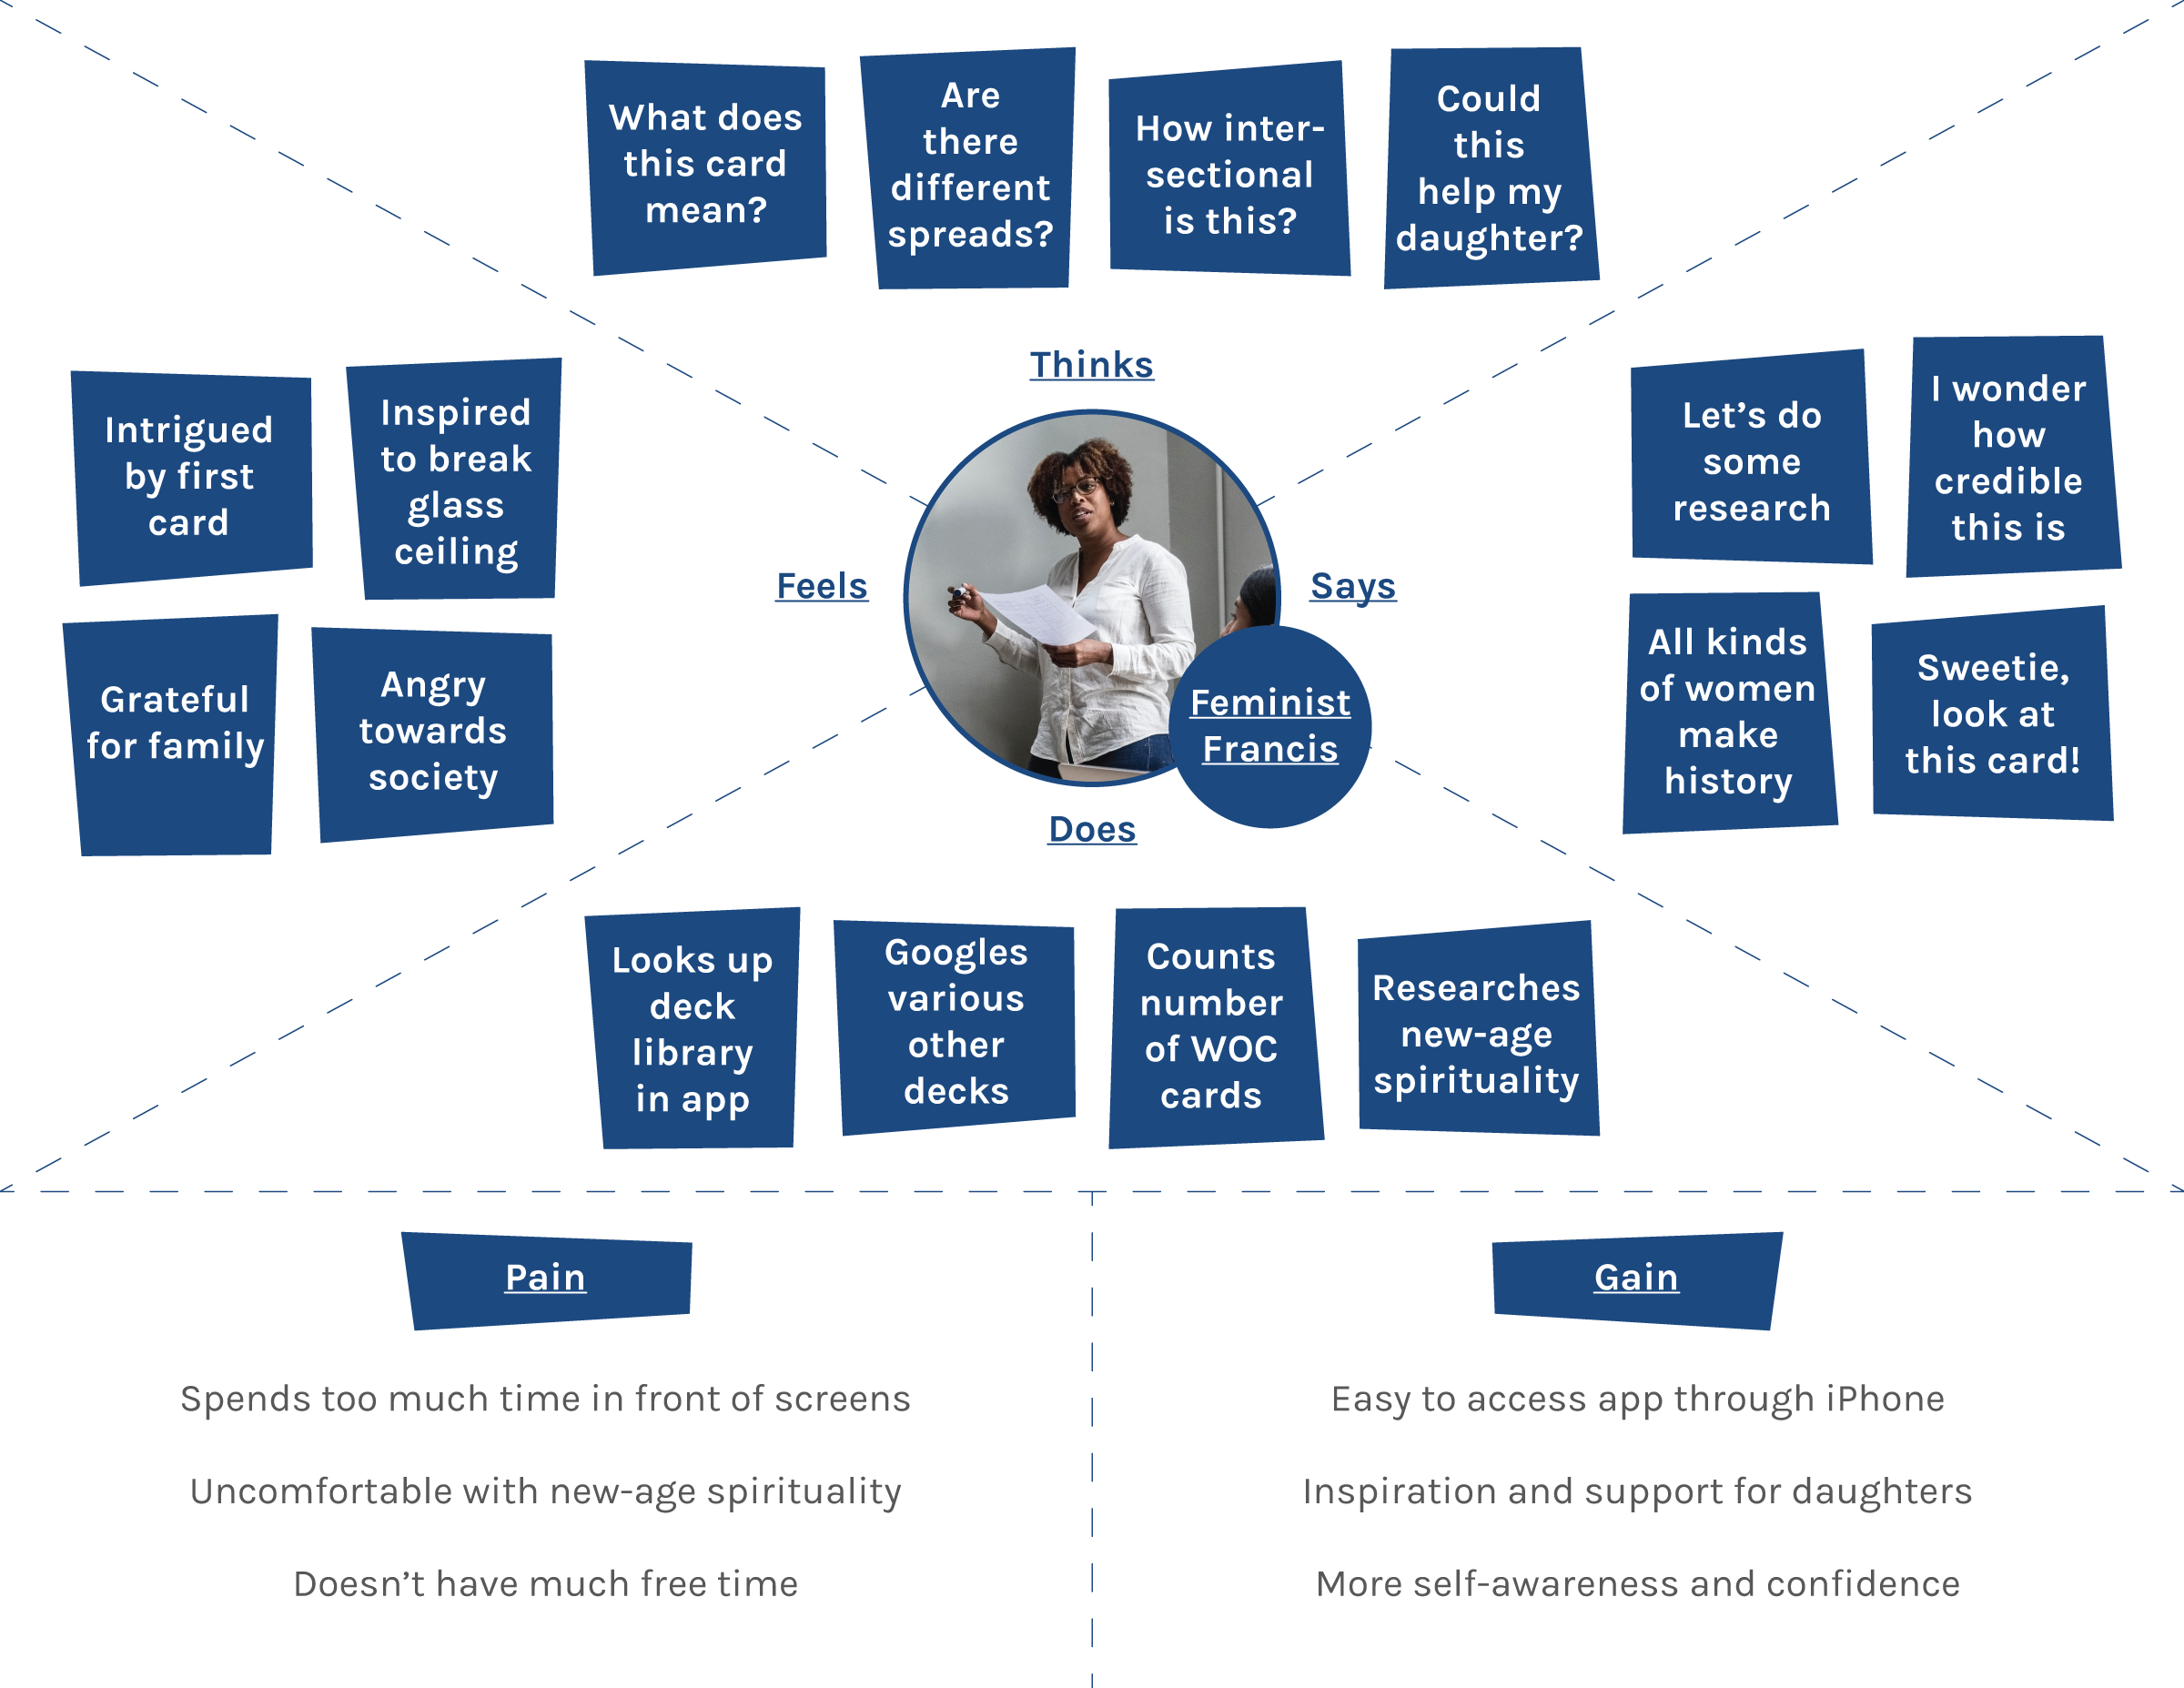 feminist-francis-empathy-maps.png